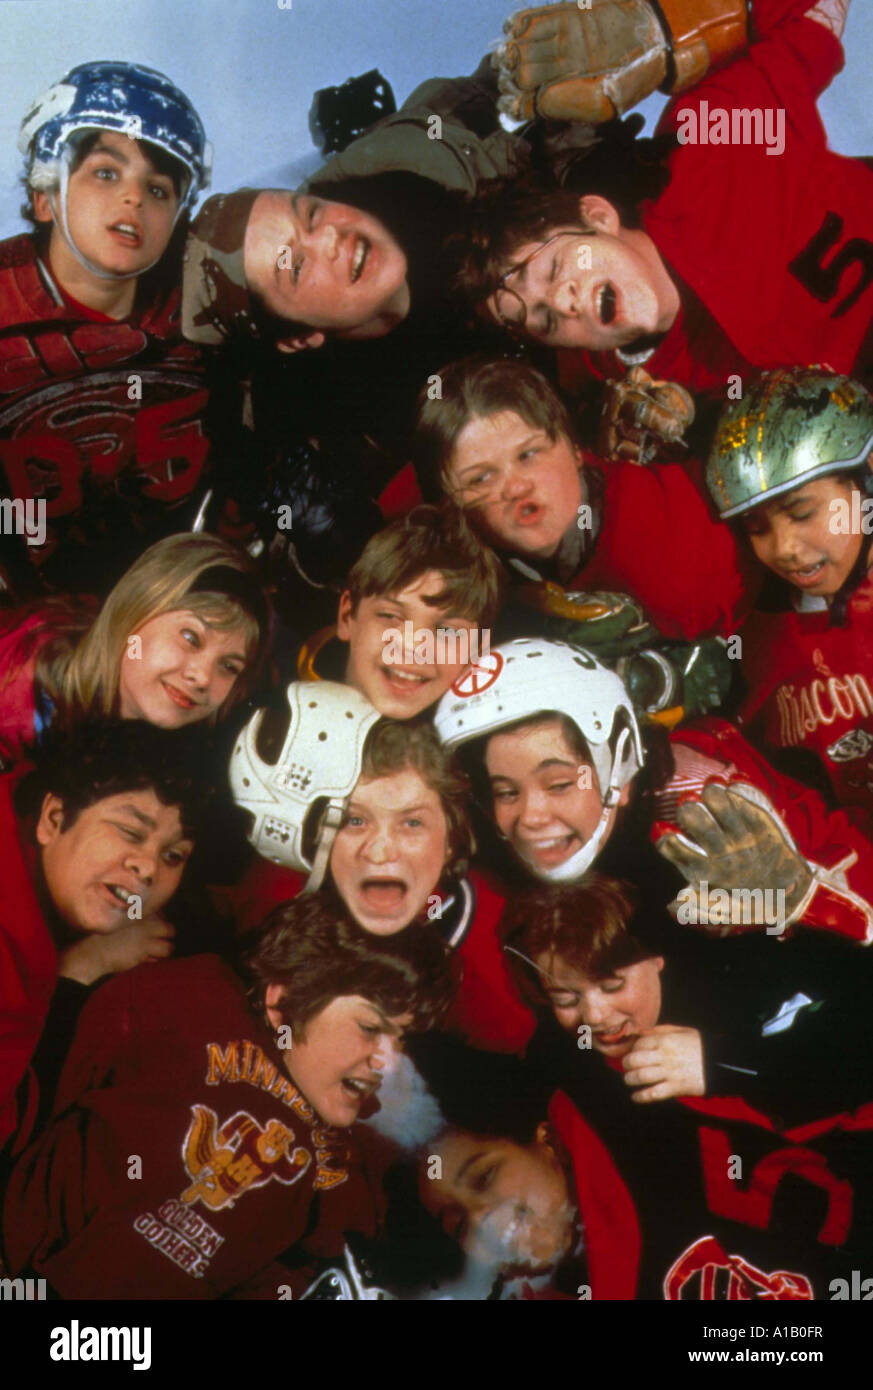 The Mighty Ducks Year 1992 Director Stephen Herek Emilio Estevez - Stock Image